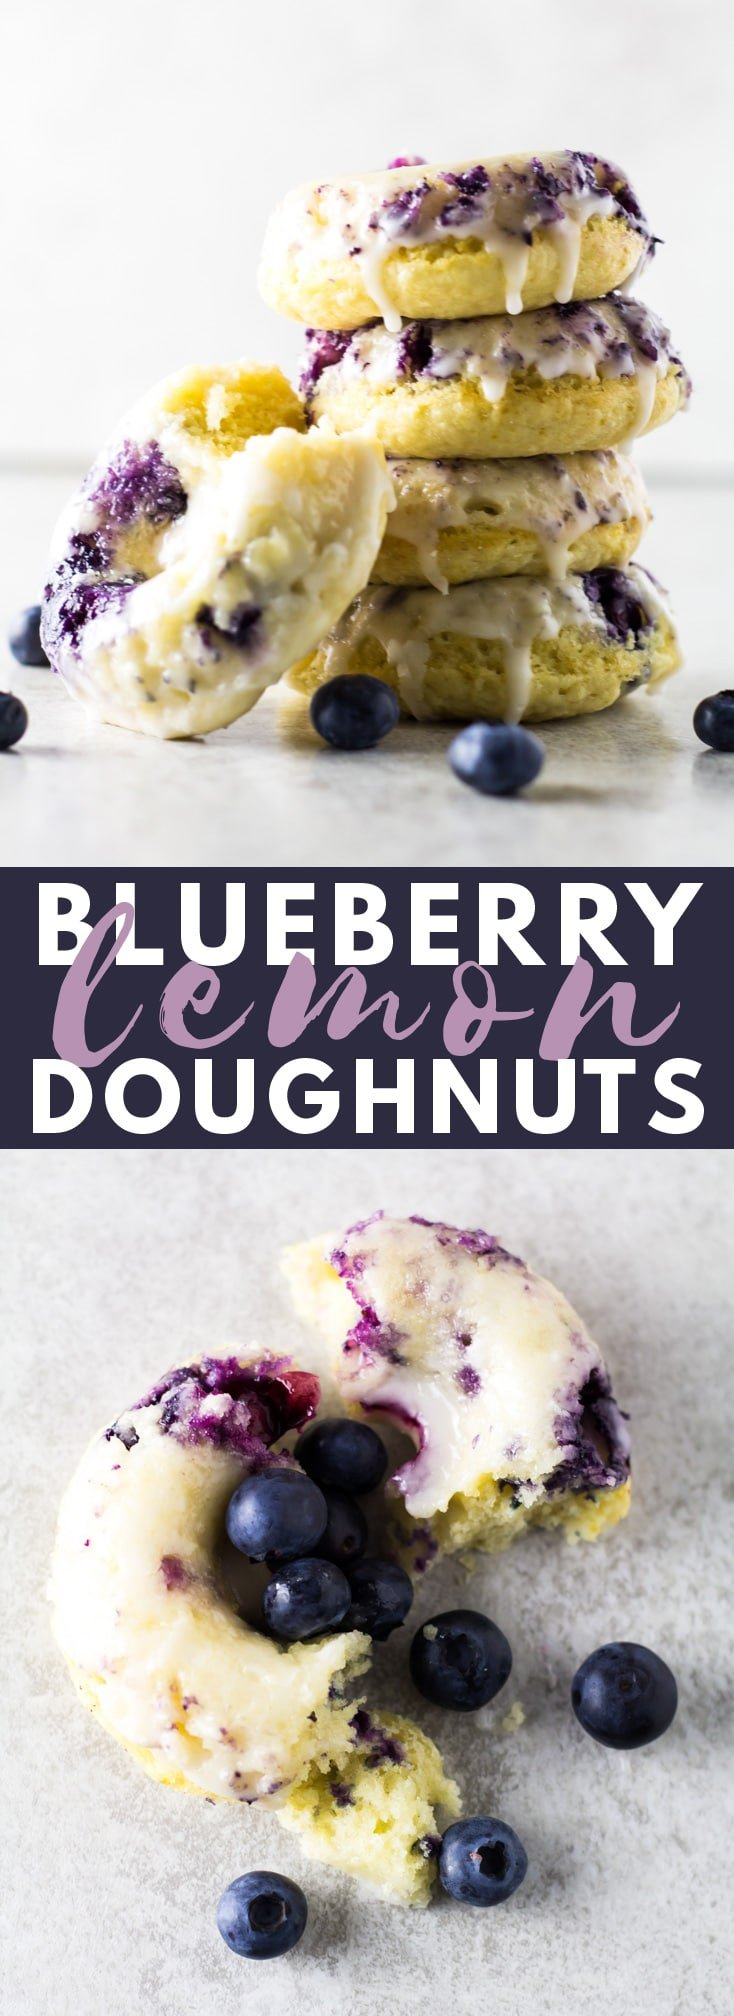 Baked Lemon Blueberry Doughnuts